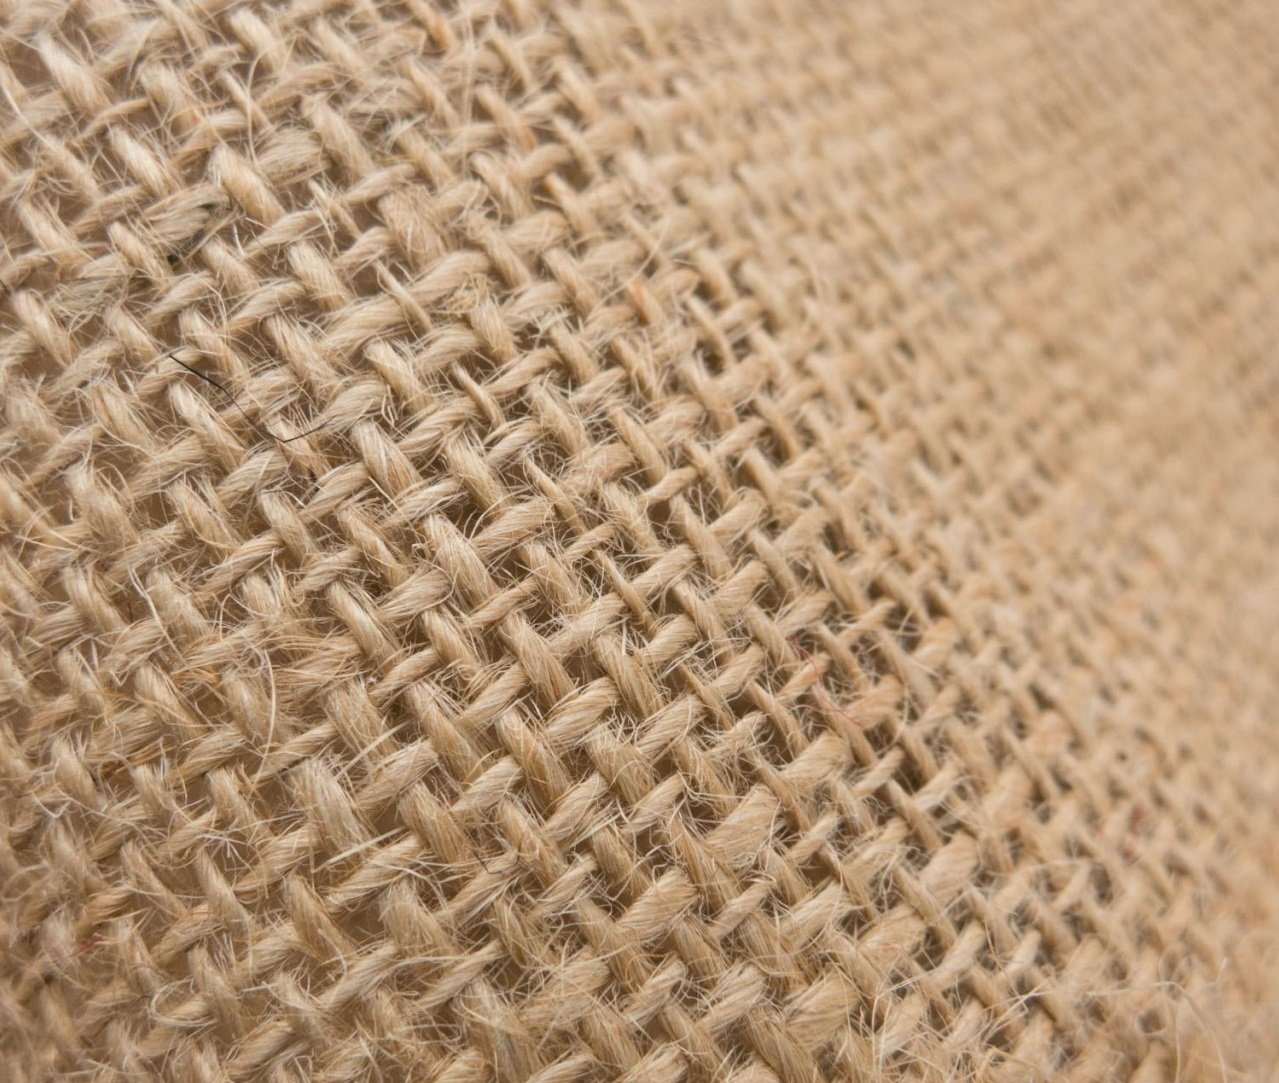 Jute Burlap Natural 40 Inch Wide Wholesale Bulk By the Roll/Bolt (100 Yard By The Roll) by The Fabric Exchange (Image #1)